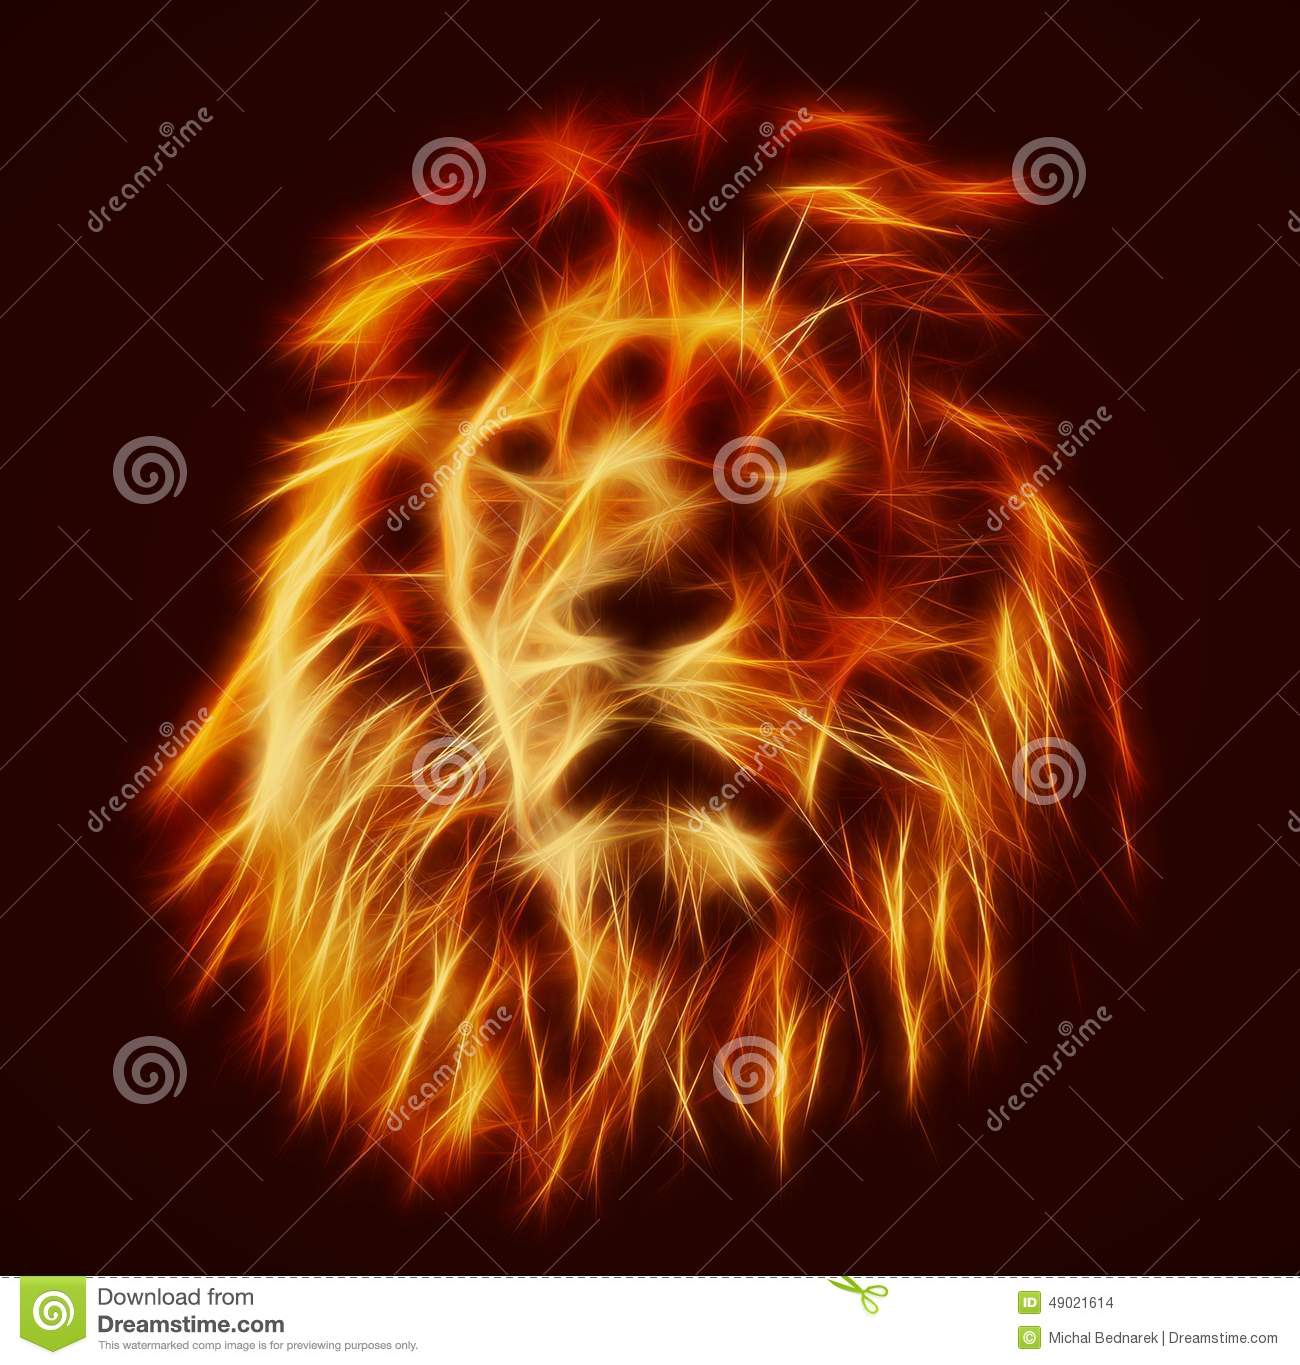 Sikh Animated Wallpaper Abstract Artistic Lion Portrait Fire Flames Fur Stock